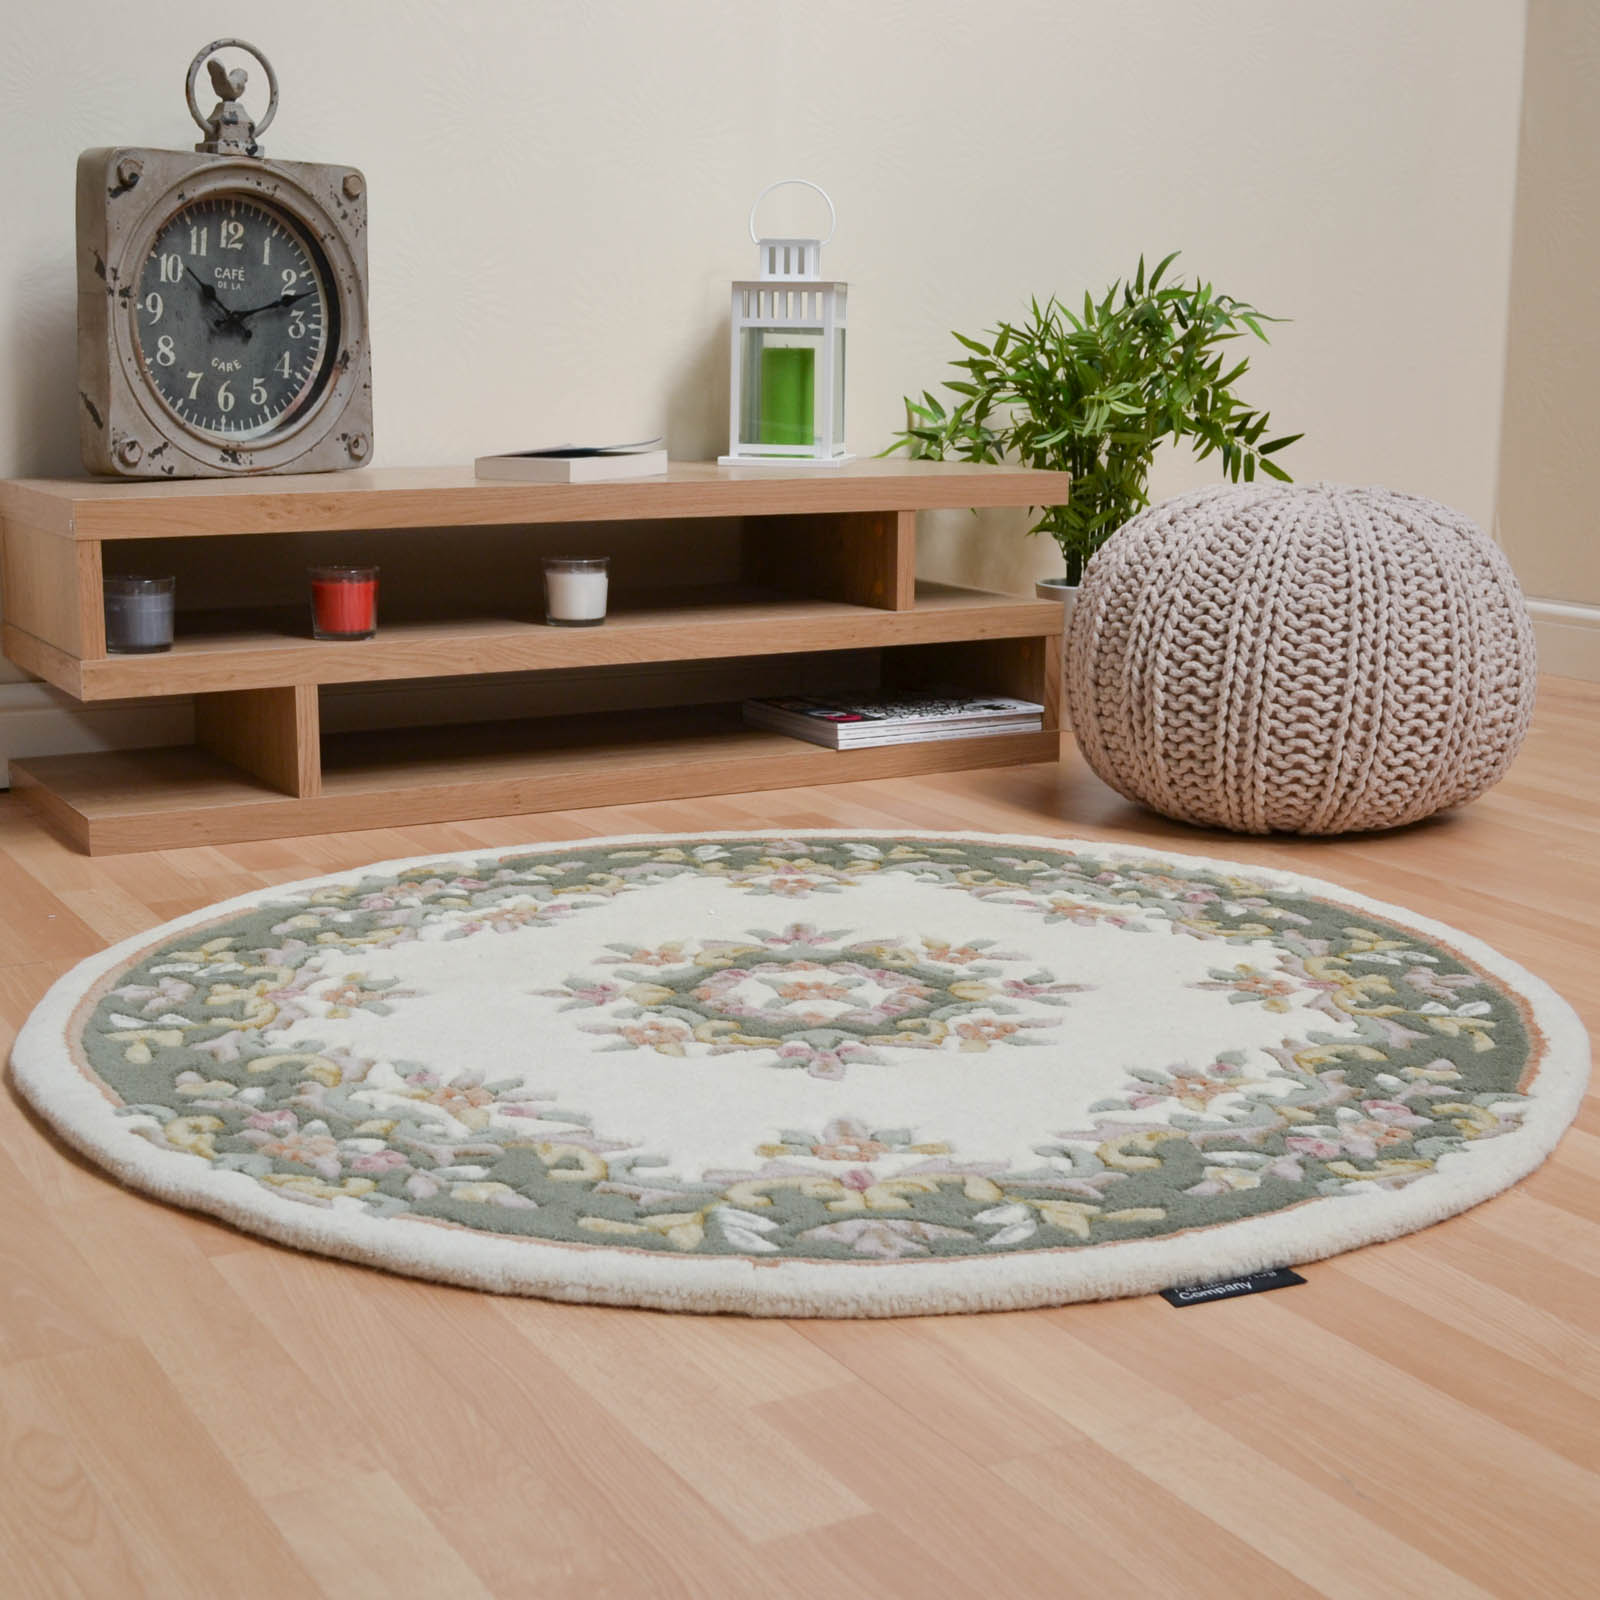 Jewel Circular Wool Rugs in Ivory Green